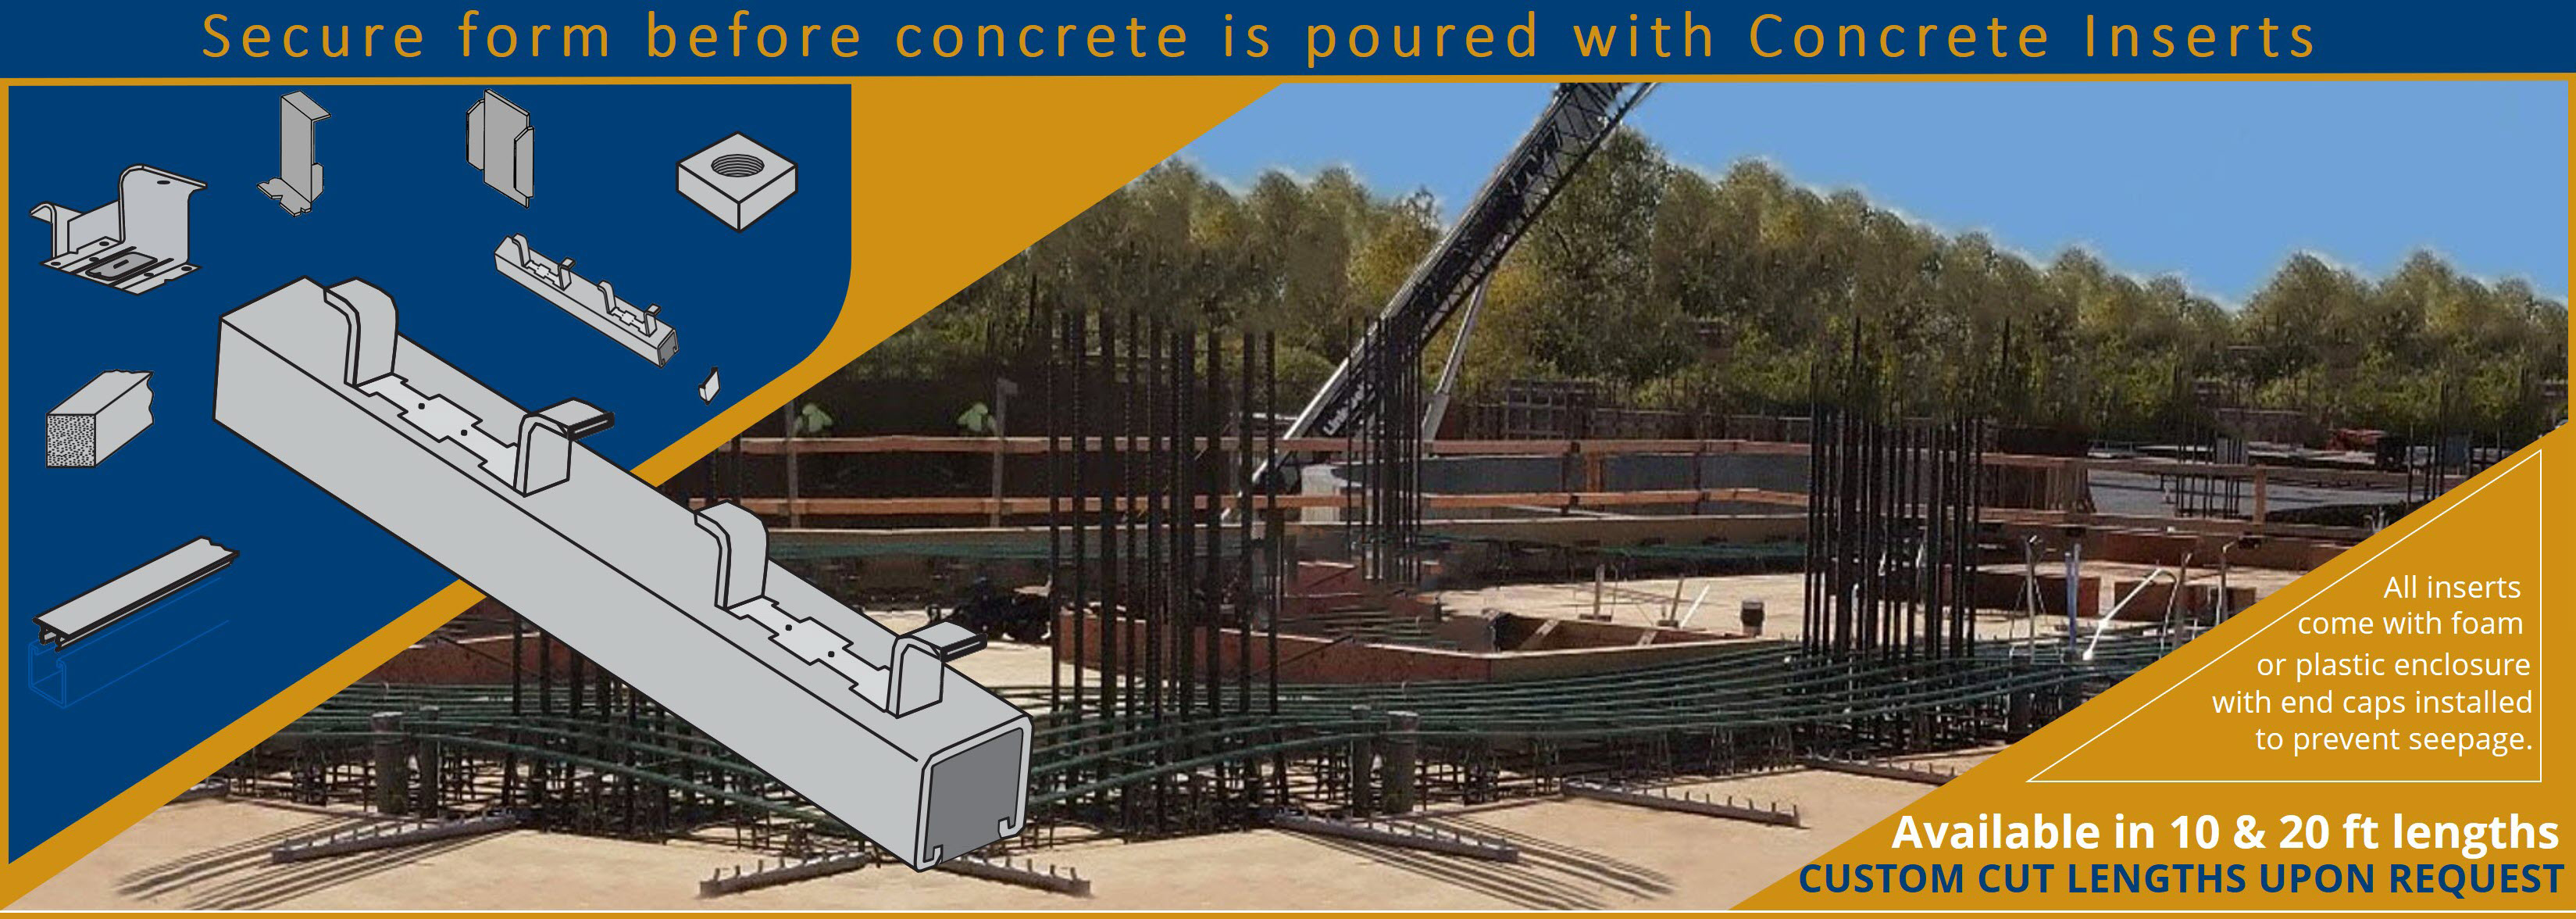 Concrete Inserts Available For Any Job Application